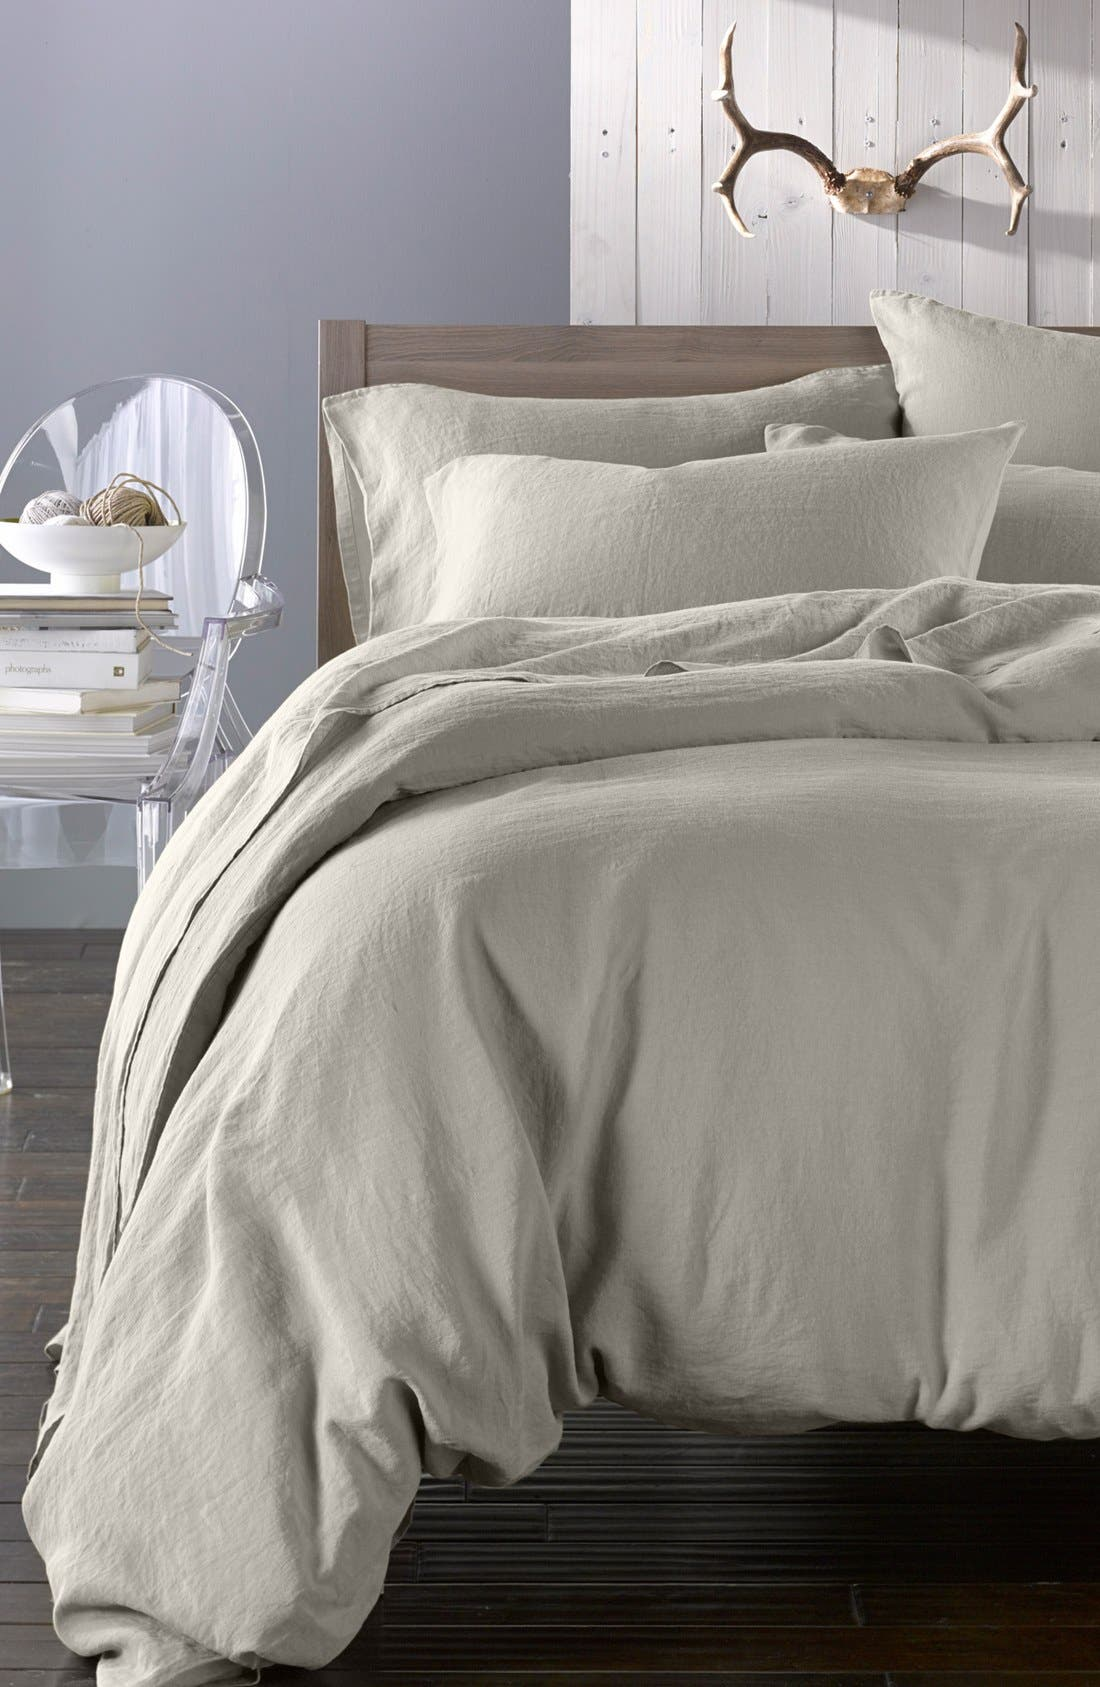 Main Image - Merci Washed Linen Queen Size Duvet Cover